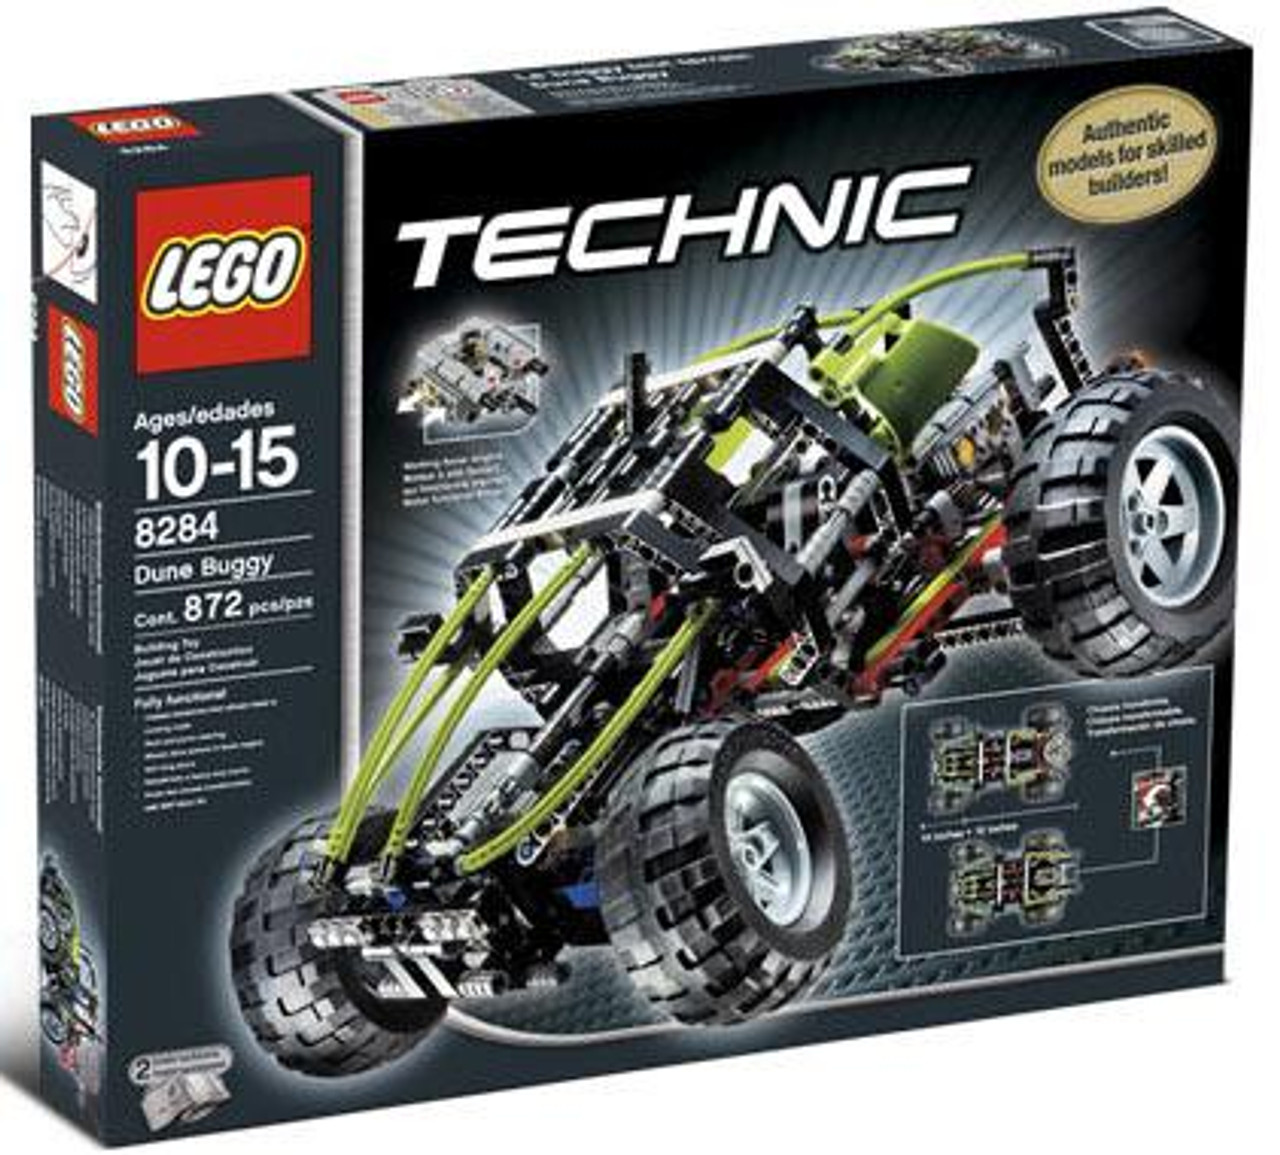 LEGO Technic Dune Buggy Set #8284 [Damaged Package]